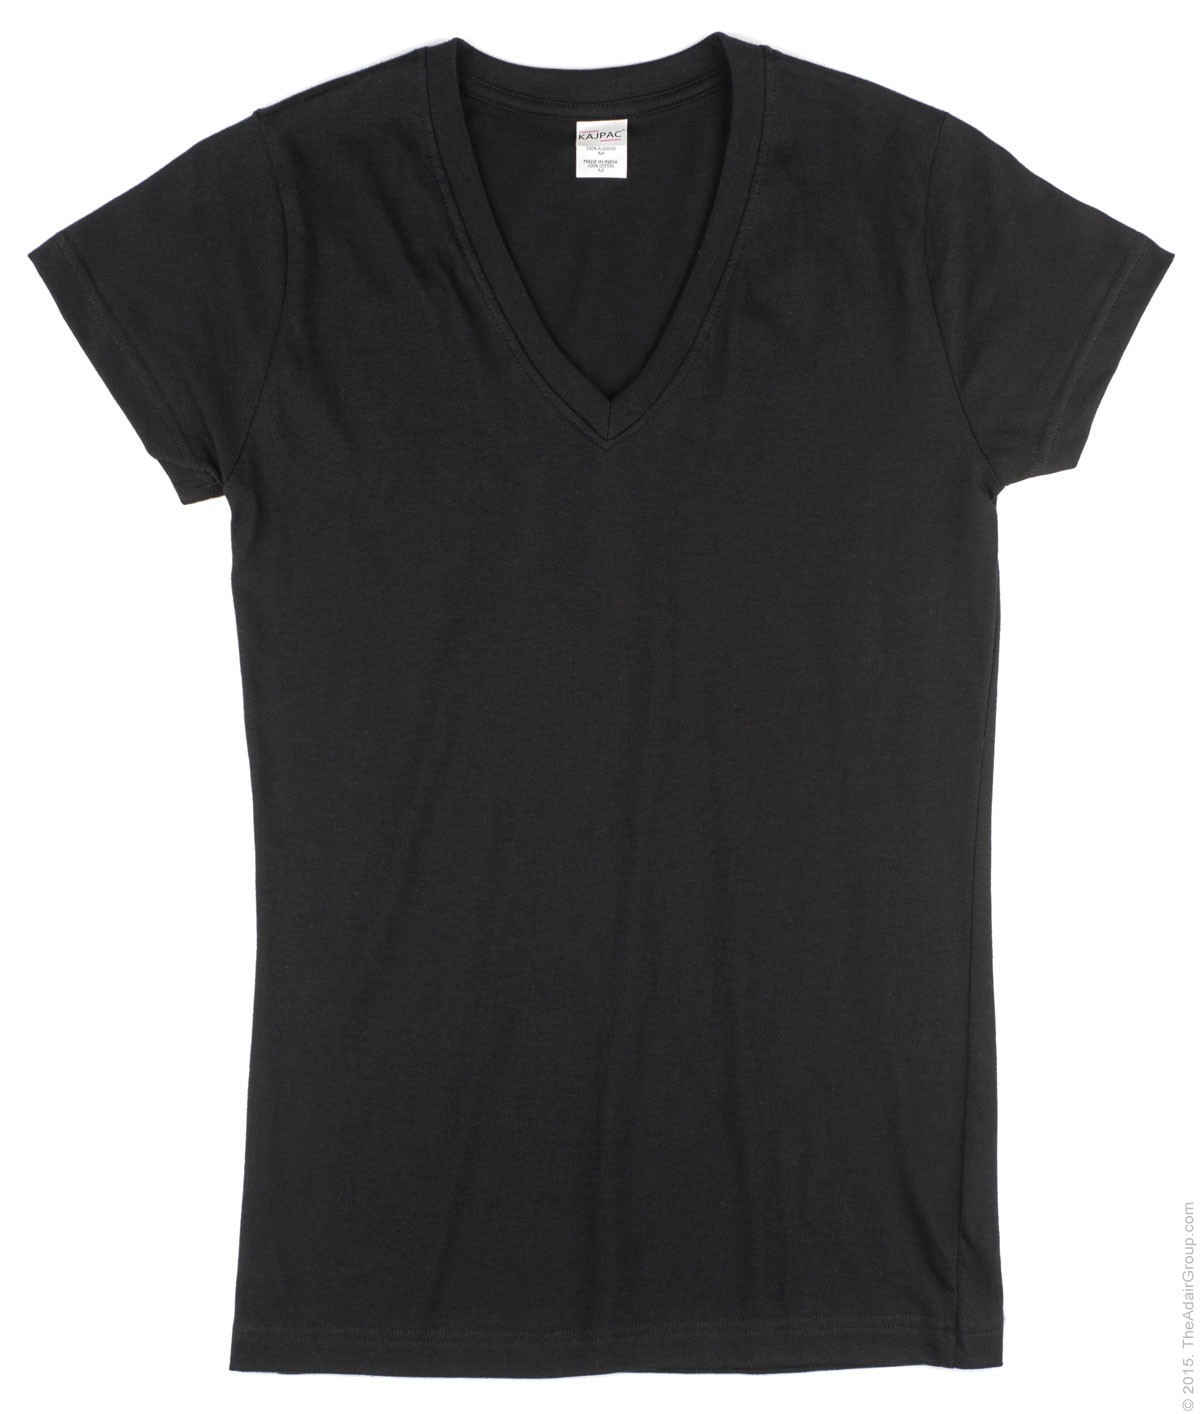 November 2014 artee shirt part 2 Womens black tee shirt